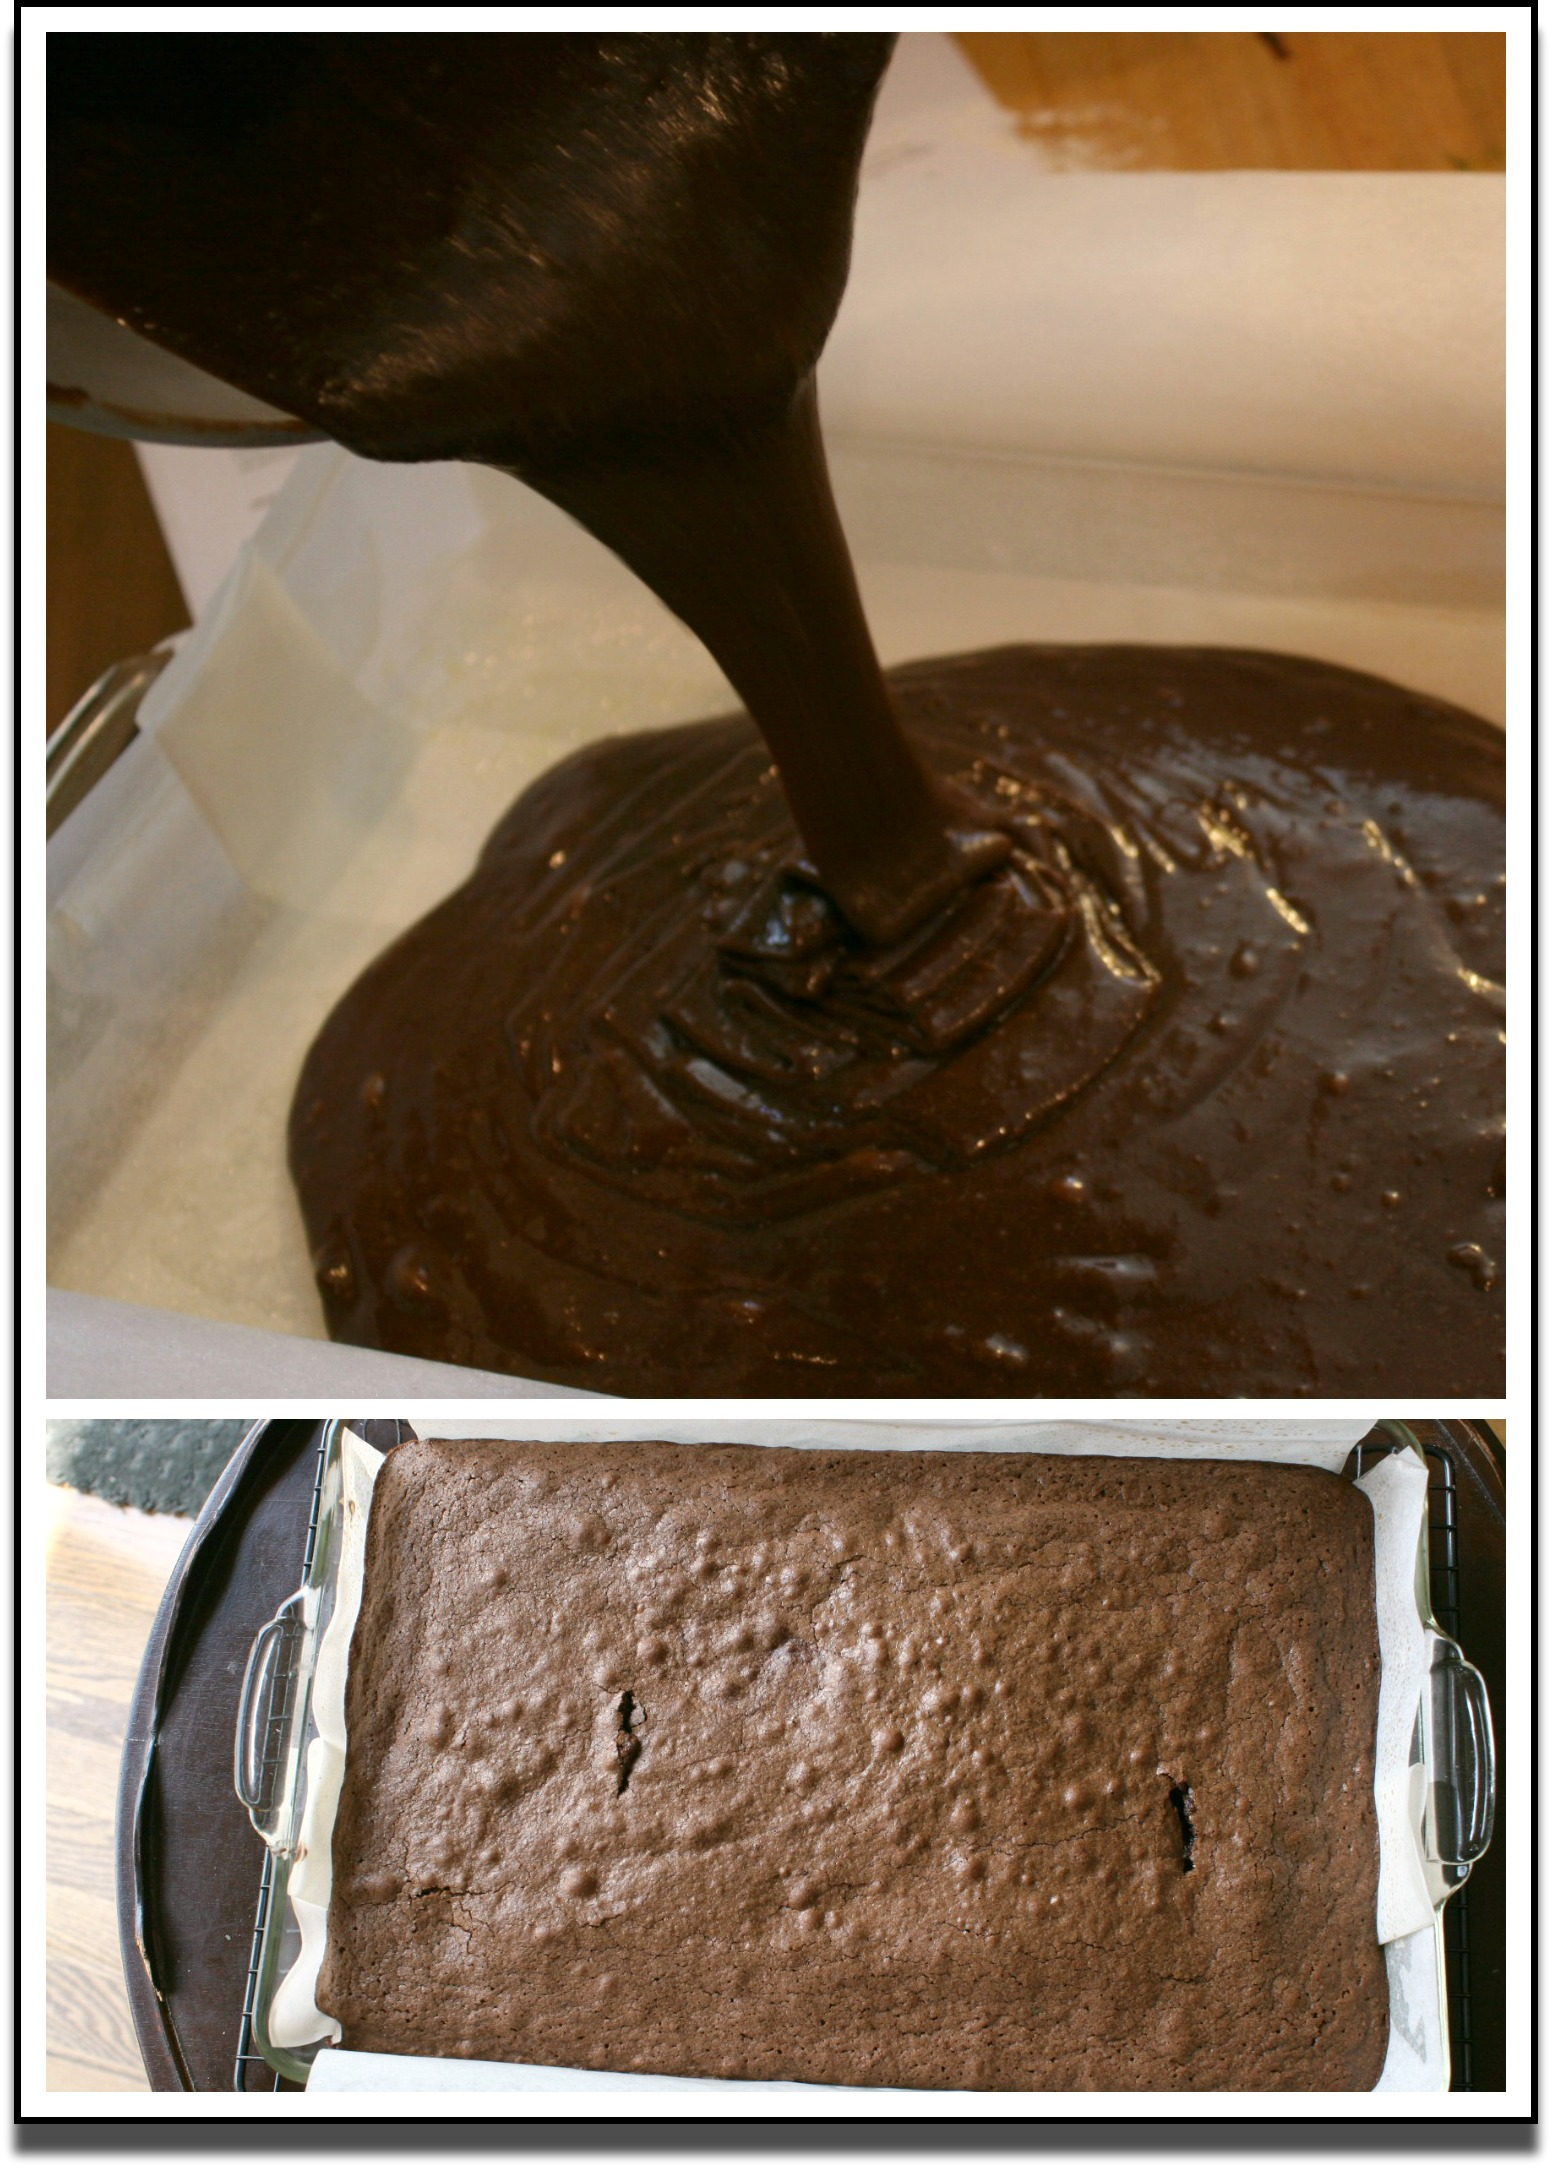 Brownie Batter Pour